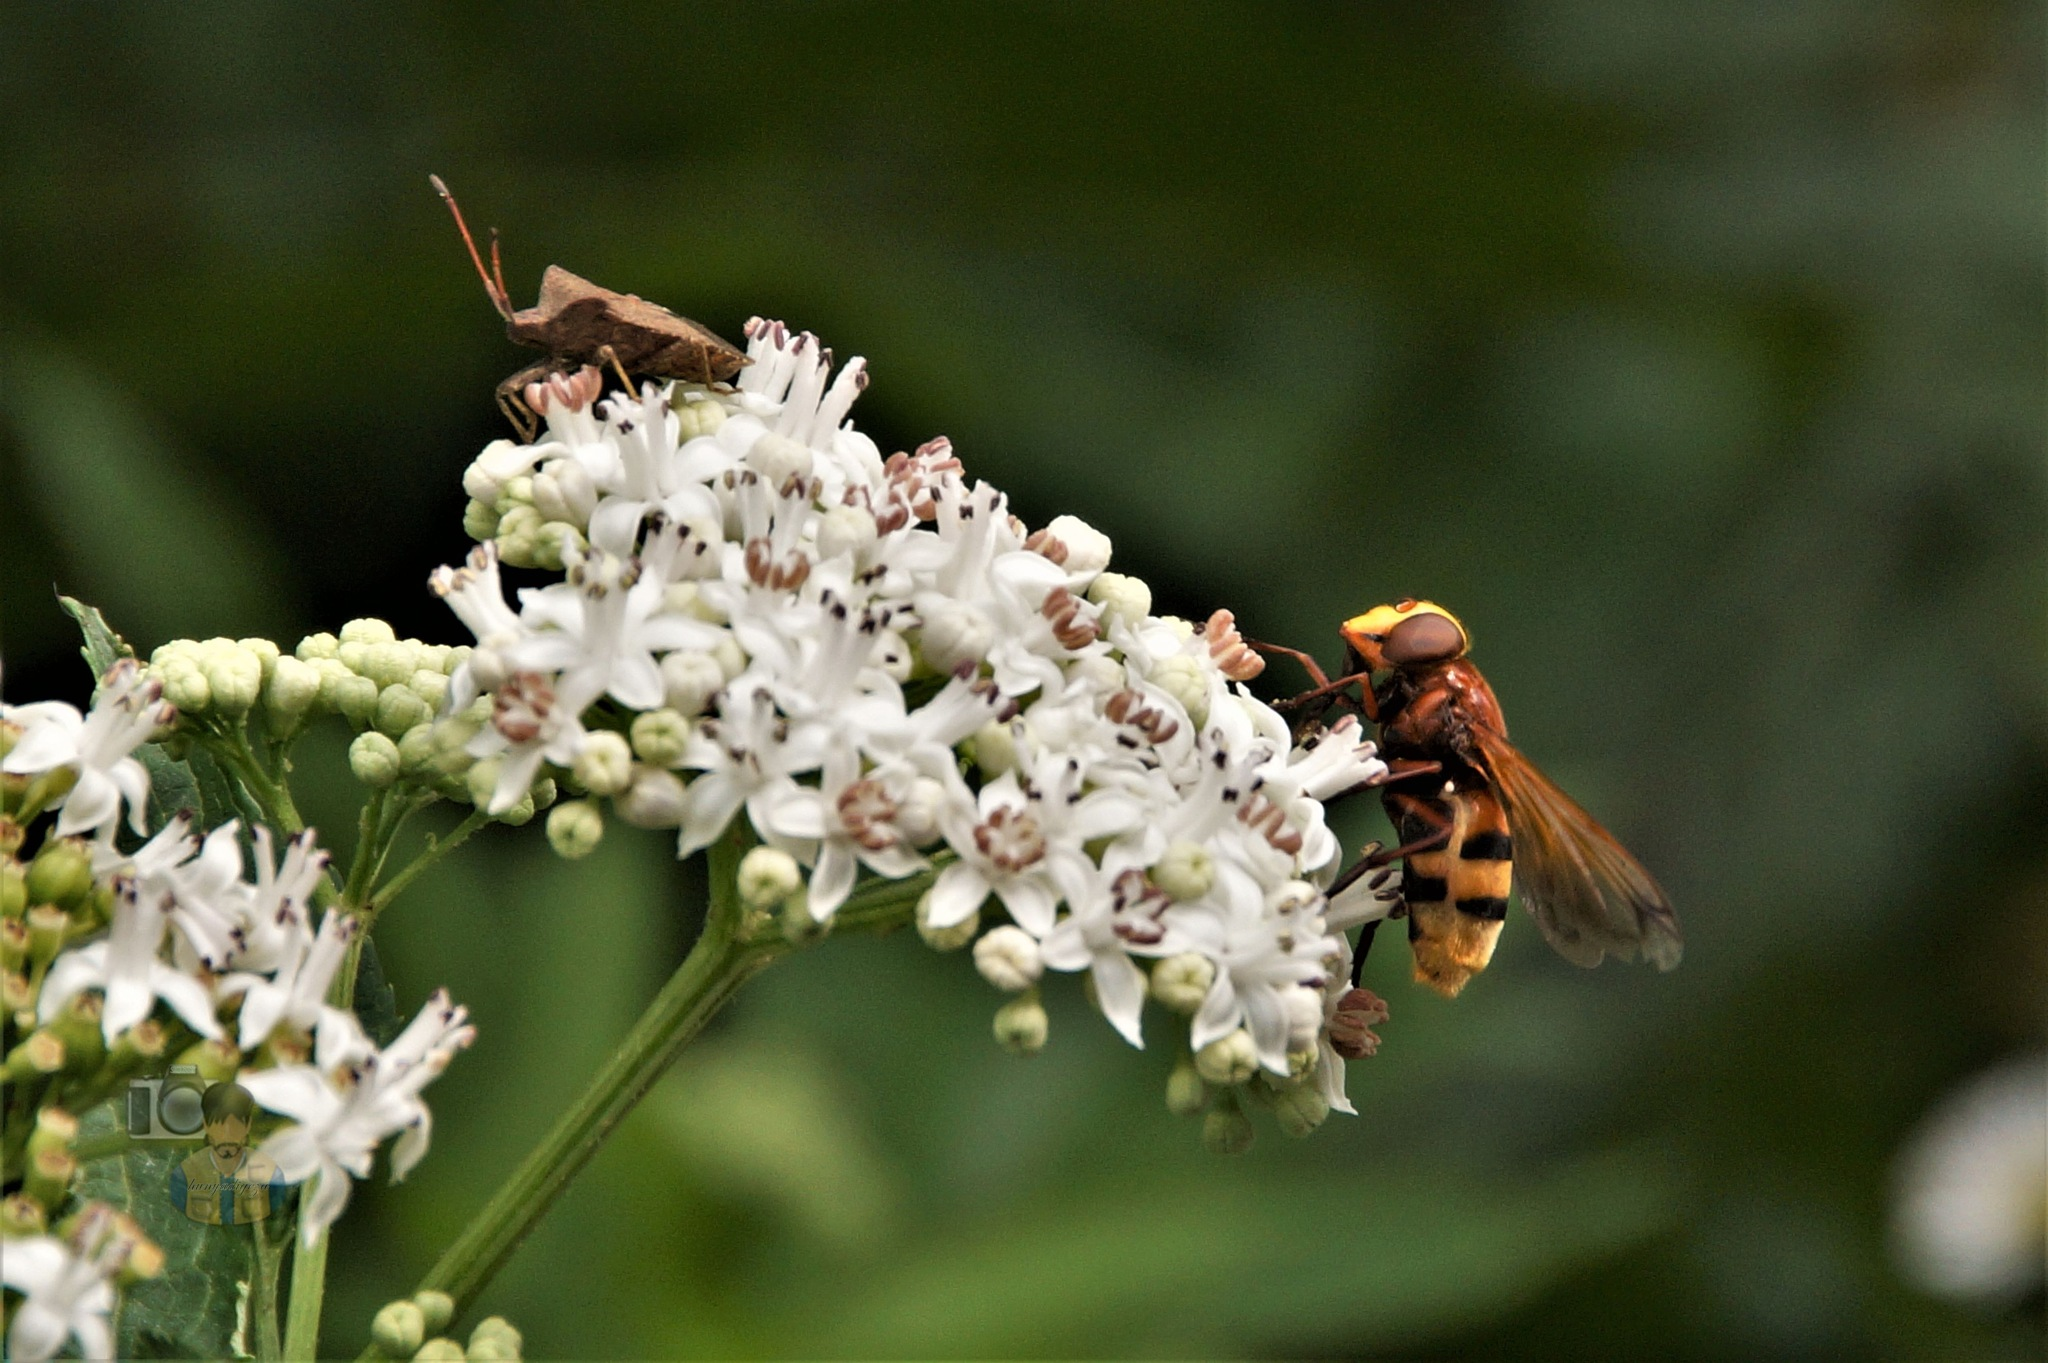 July 16, the hornet mimic hoverfly and the dock bug  by hunyadigeza